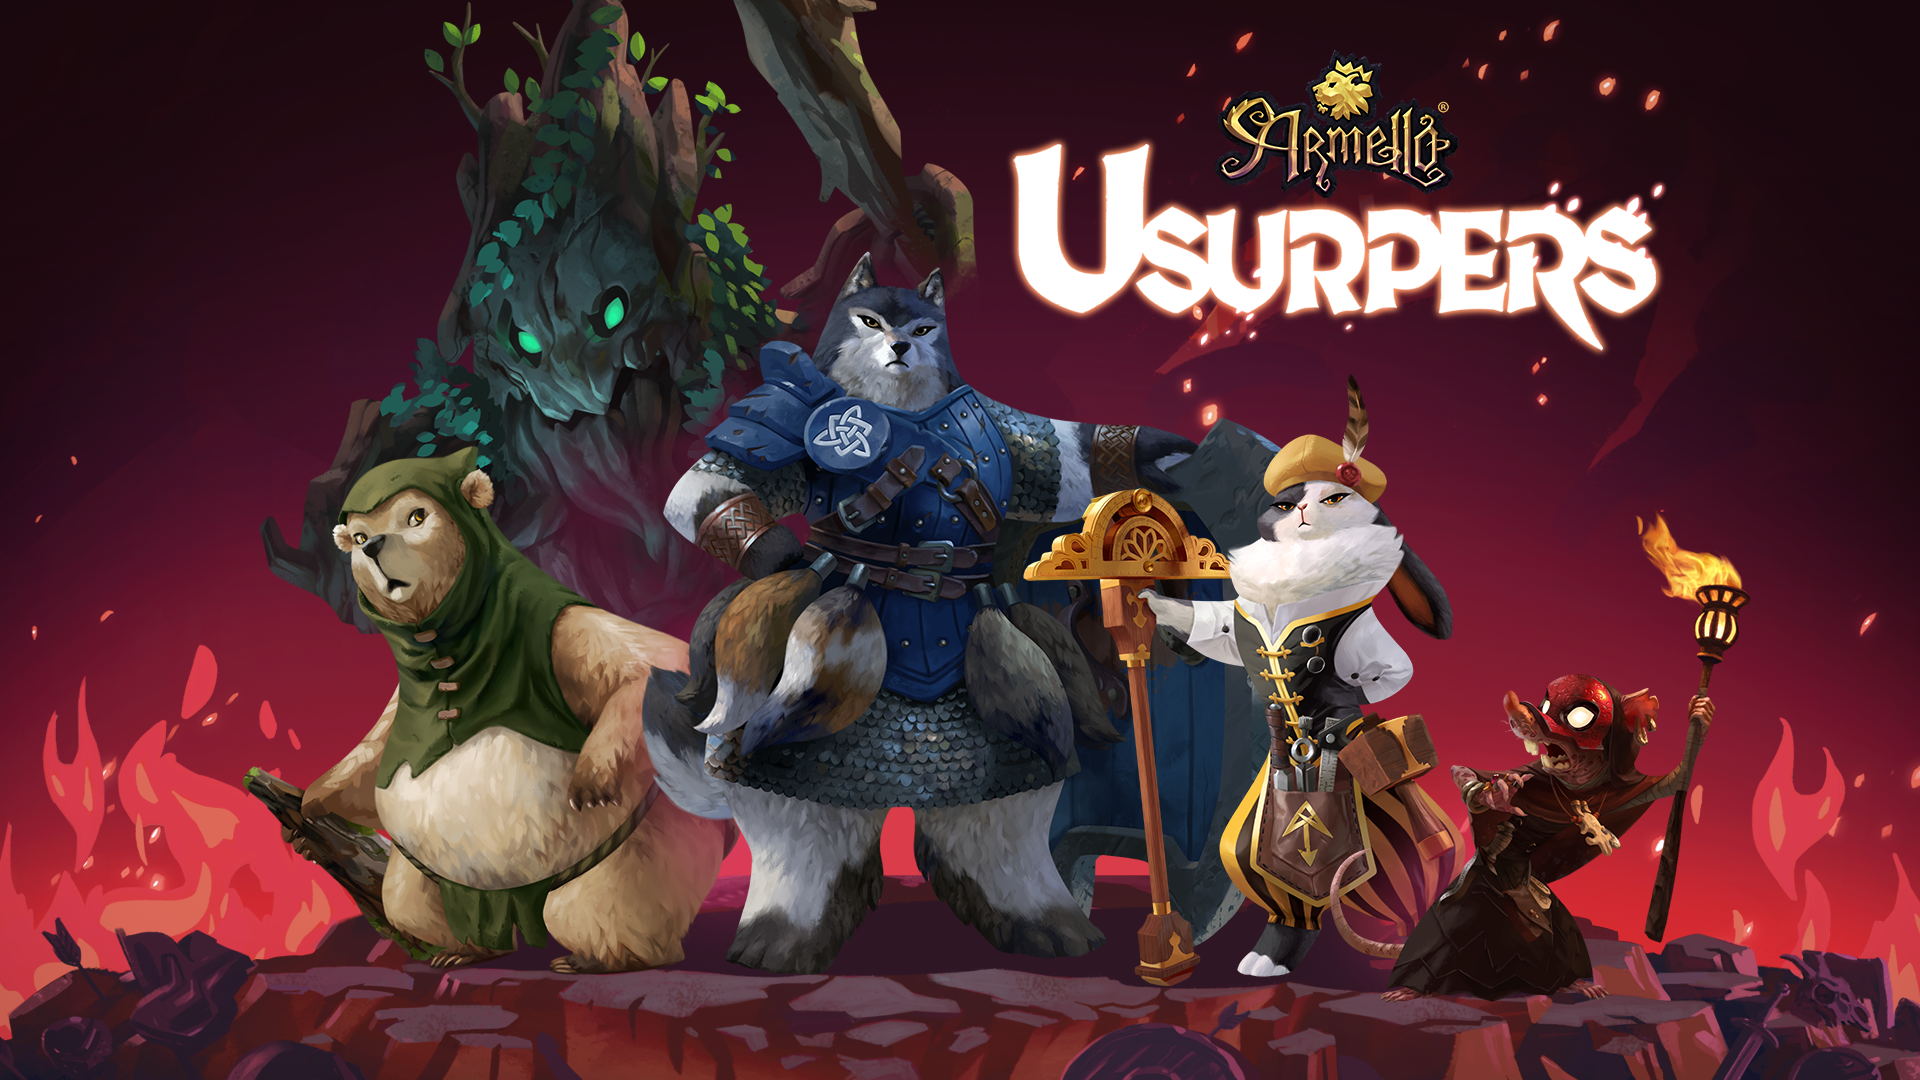 armello dlc kotaku-plays kotaku-video ps4 usurpers-hero-pack video xbox-one